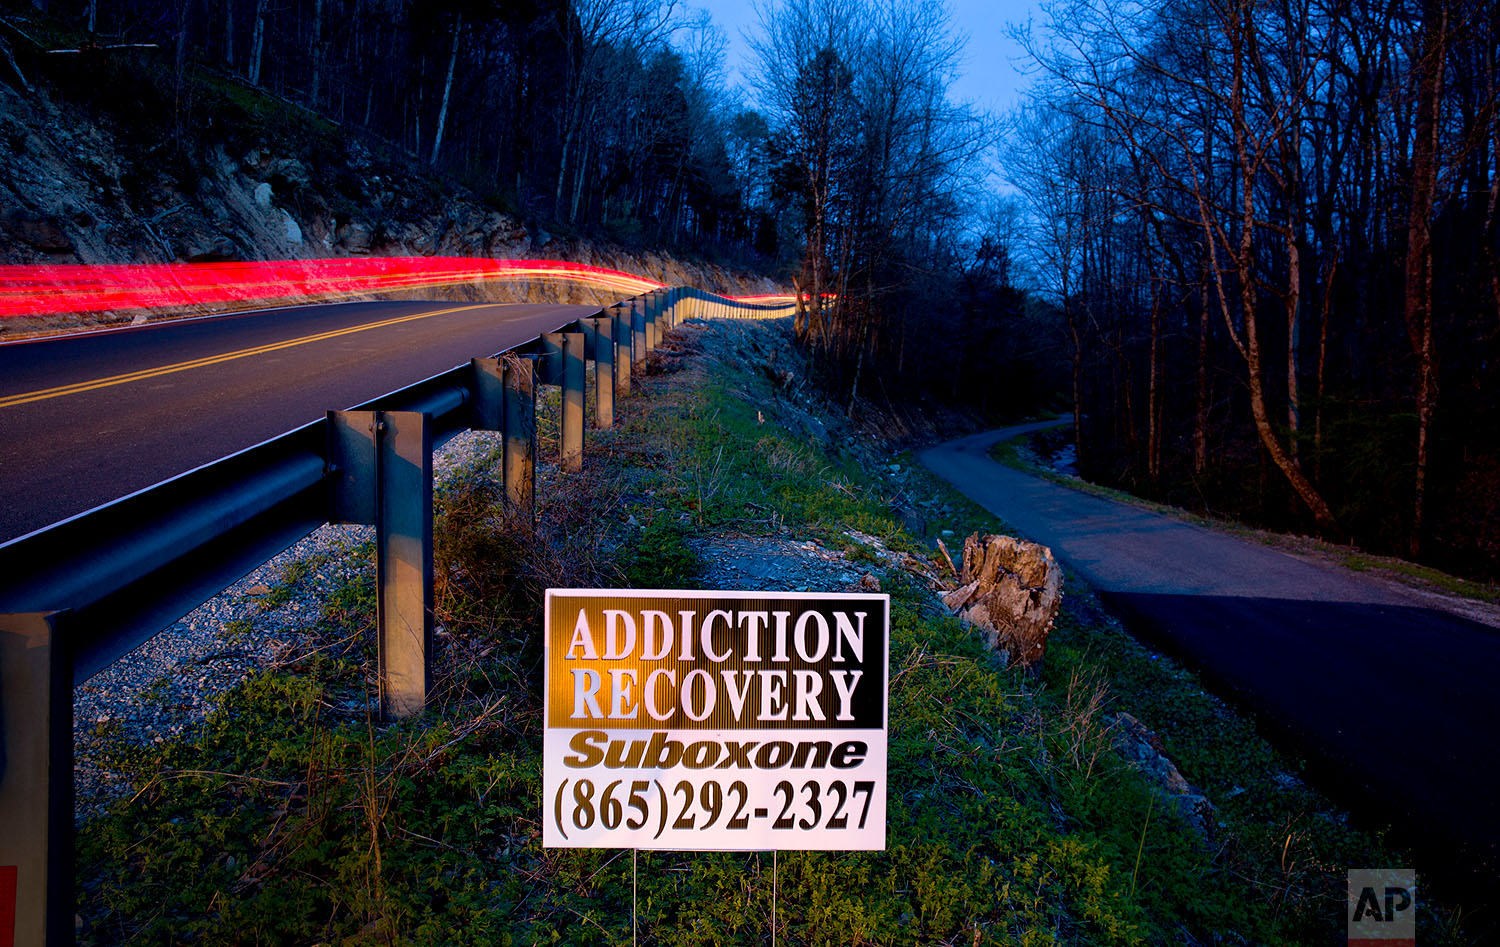 An addiction recovery sign stands beside a road in LaFollette, Tenn., Wednesday, April 11, 2018. (AP Photo/David Goldman)